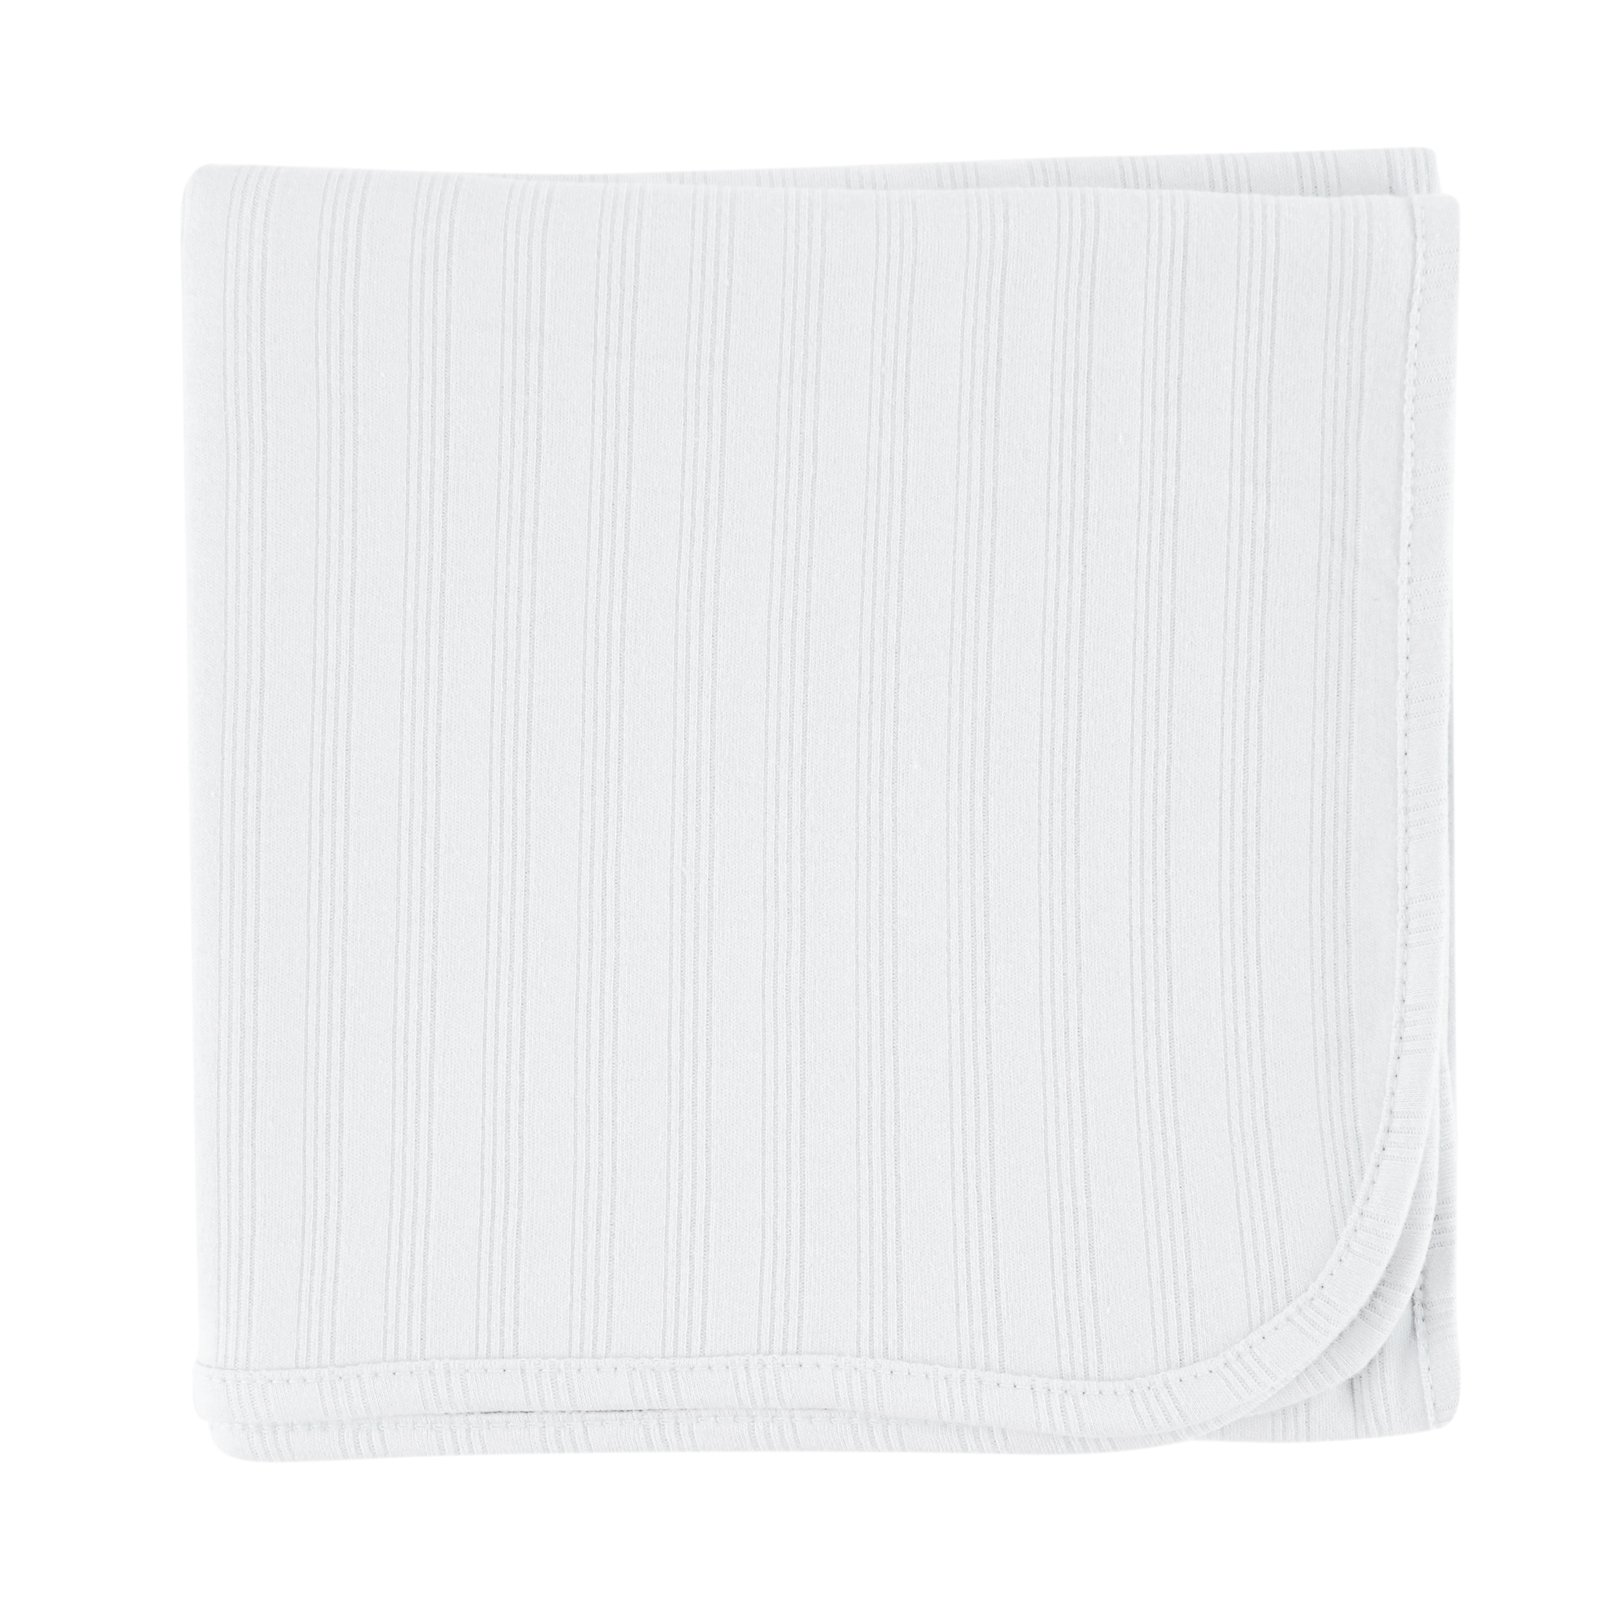 Touched by Nature Organic Receiving Blanket, White by Touched by Nature